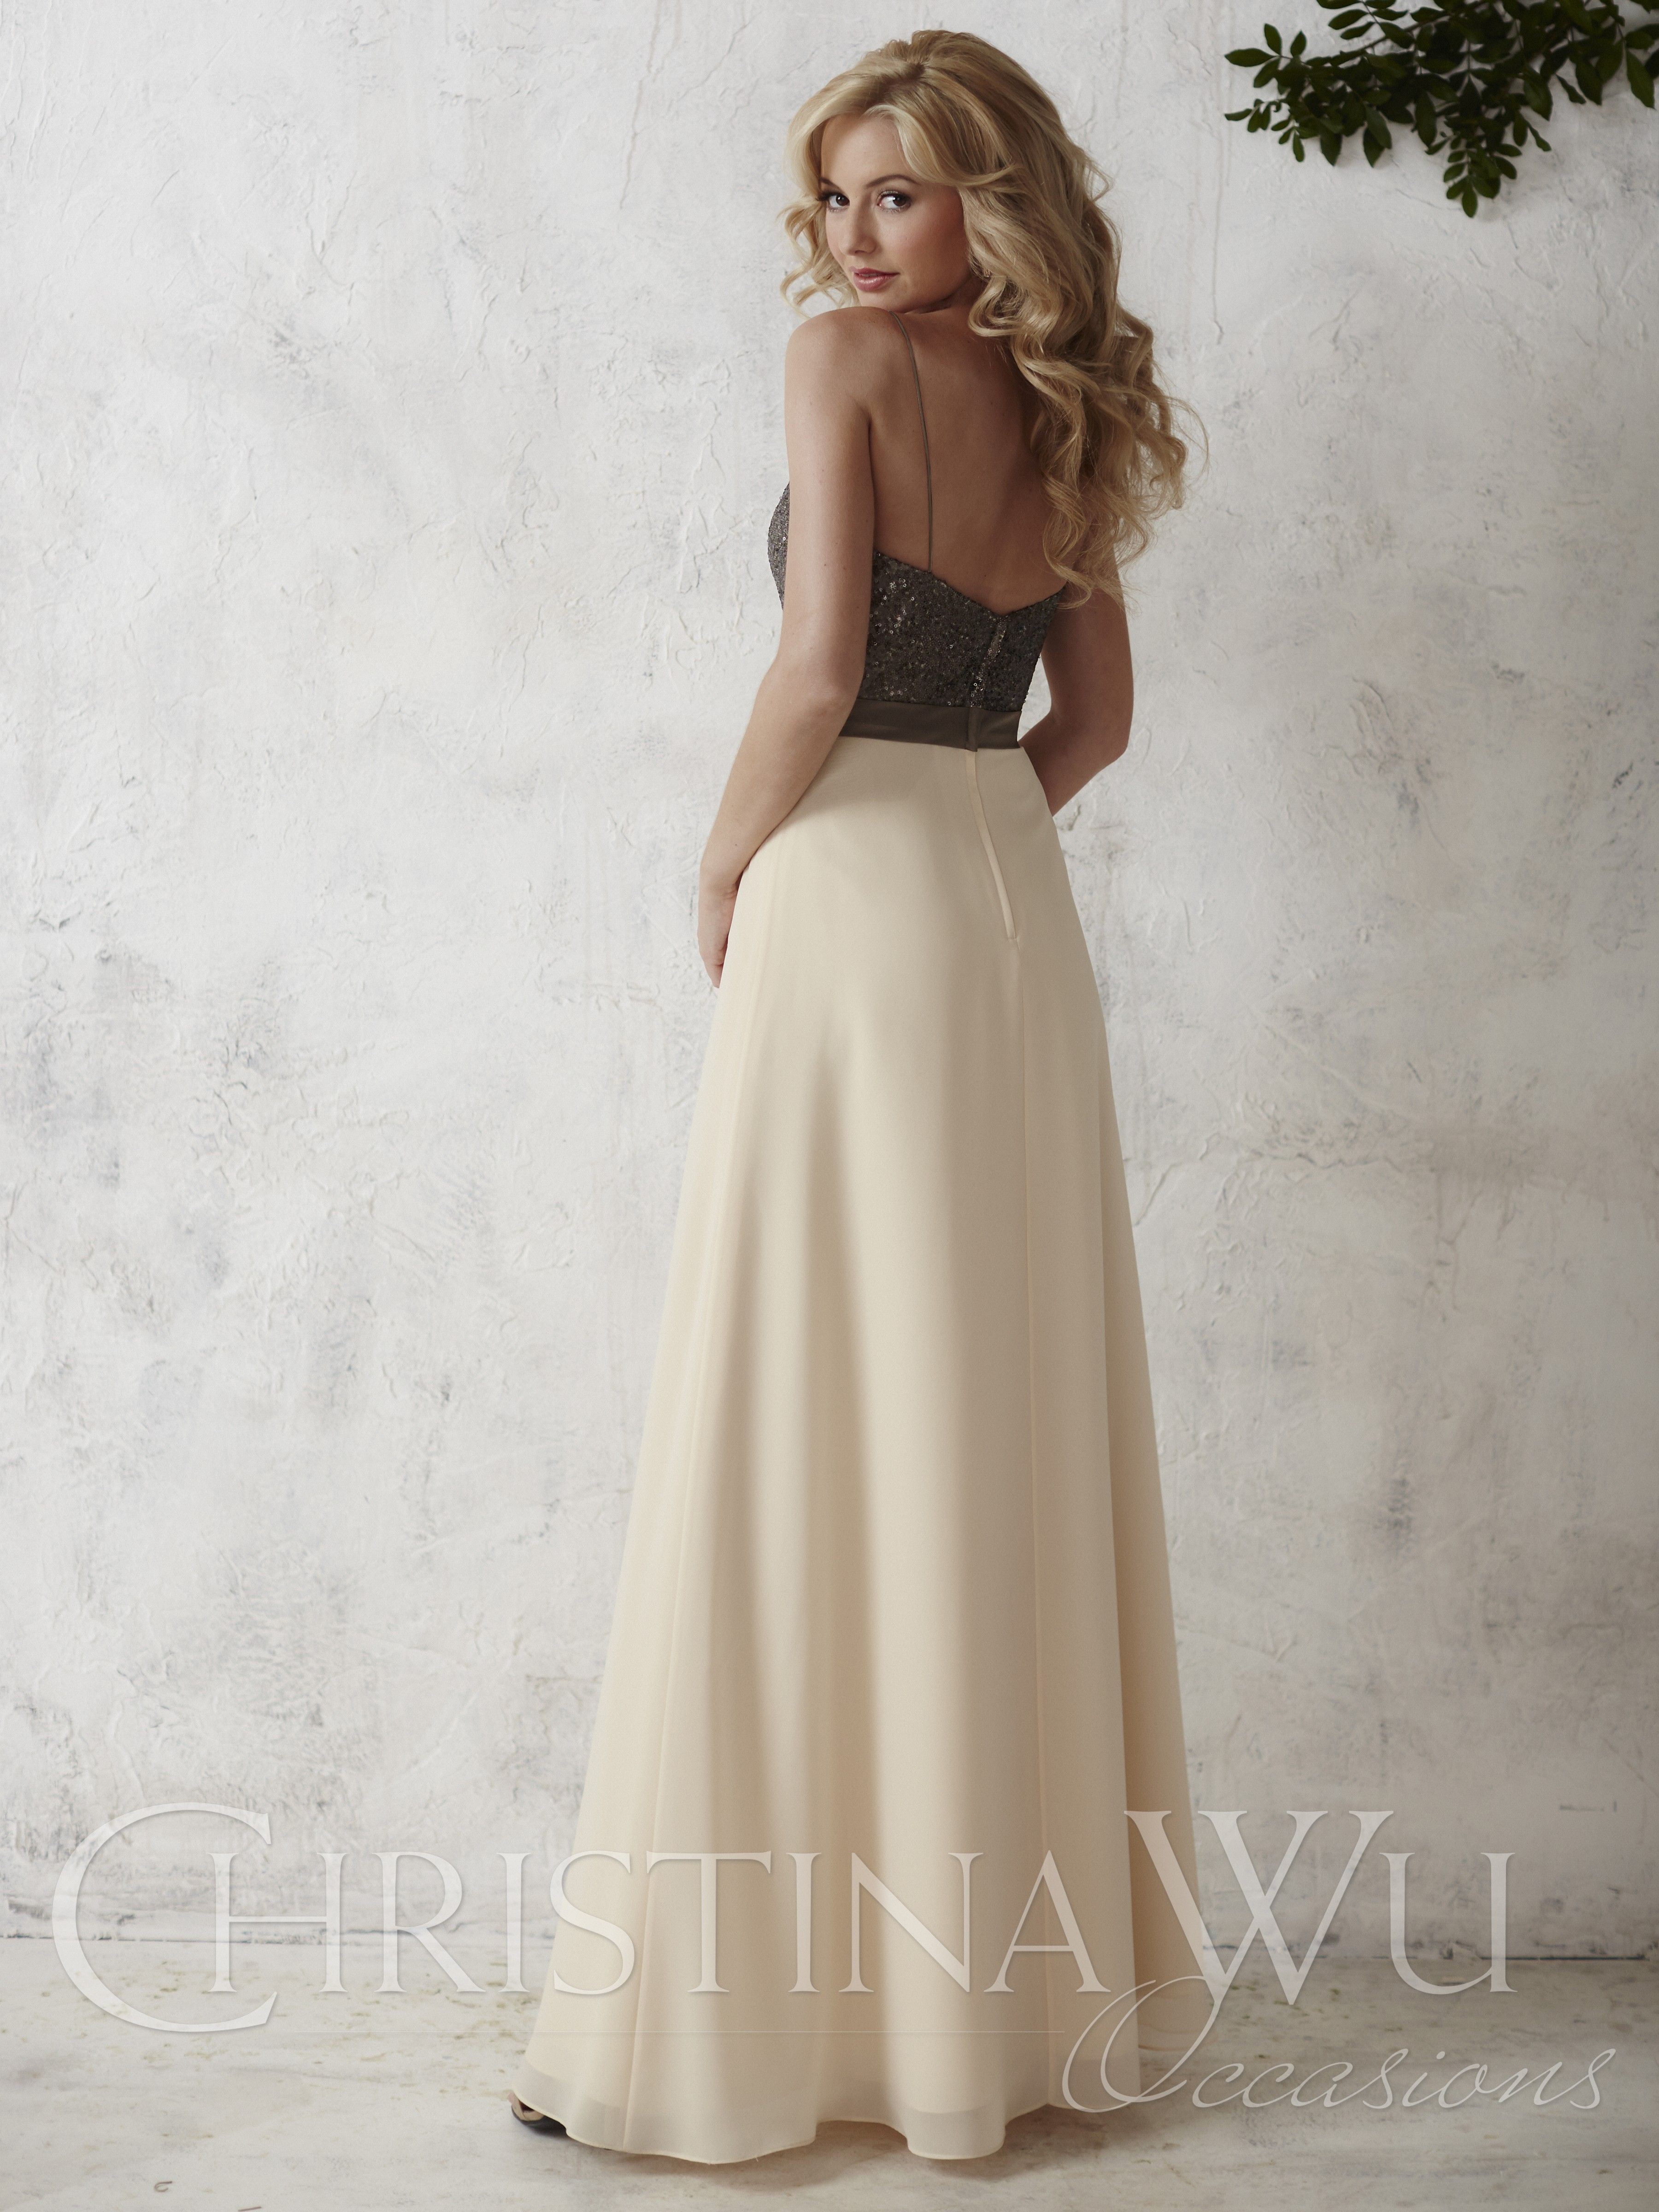 98ccd8a96c The Christina Wu Occasions 22666 bridesmaid dress has a glittering A-line  silhouette